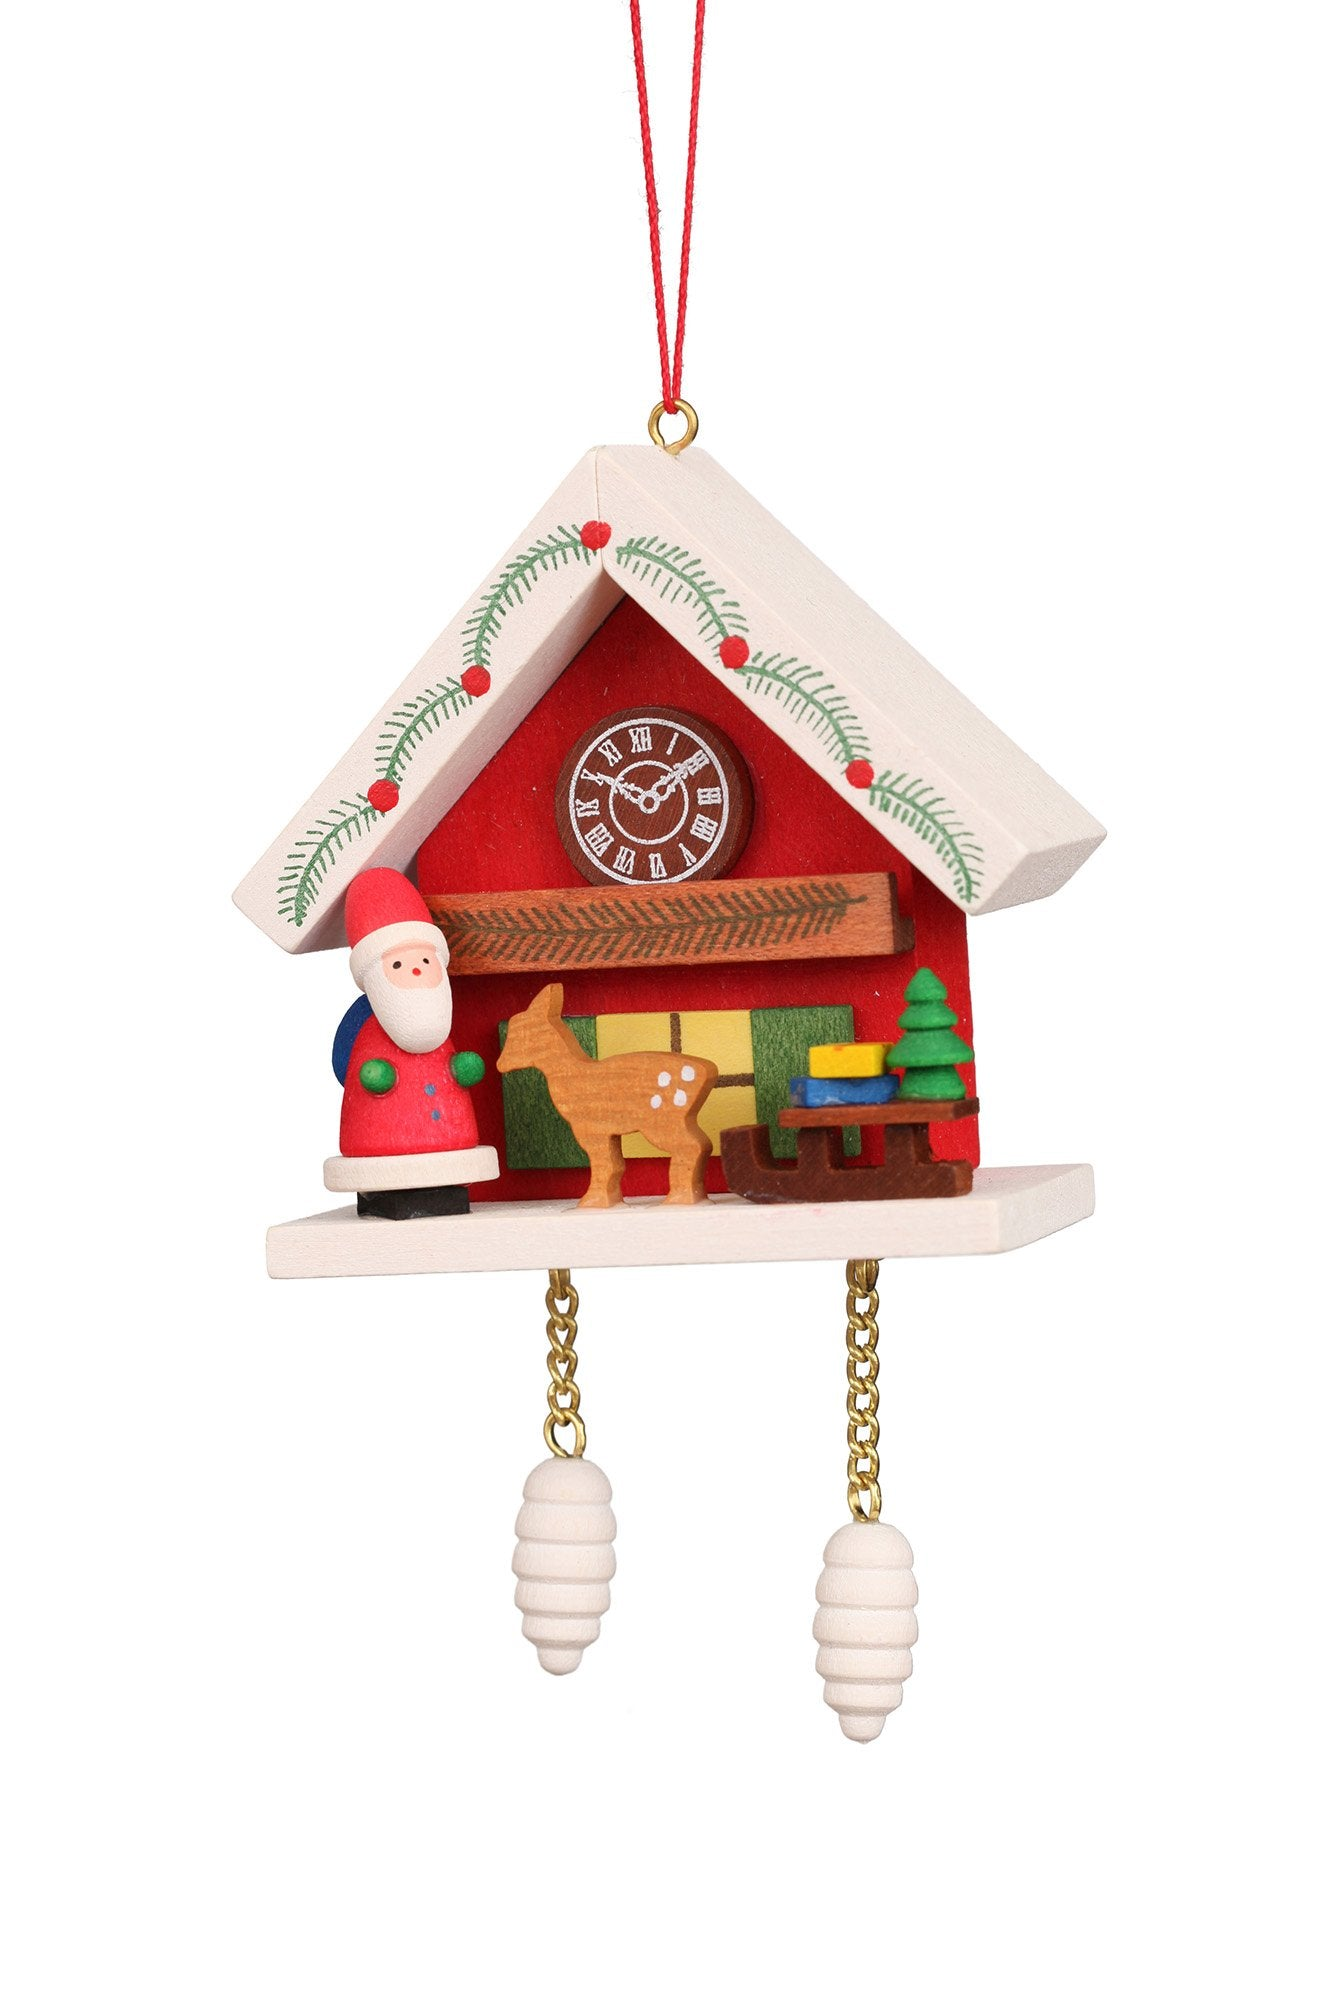 Cuckoo Clock - Santa and Reindeer under snow-capped Roof - Christmas tree decoration